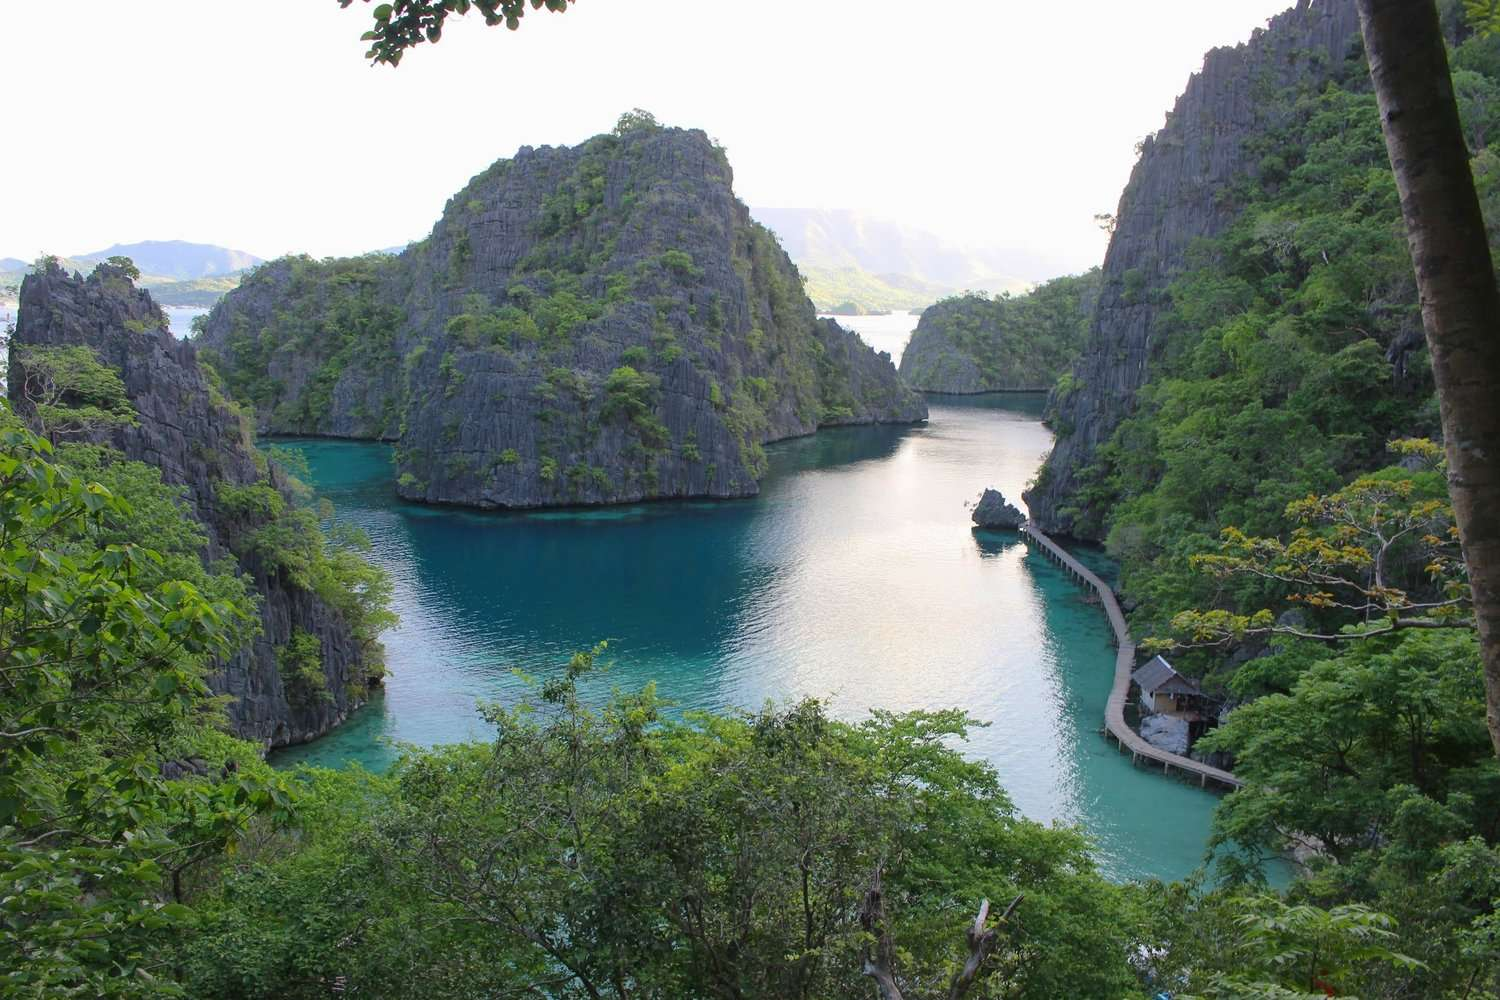 turquoise water surrounded by karst rock islands, view from the steps to Kayangan Lake on an island hopping tour in Coron